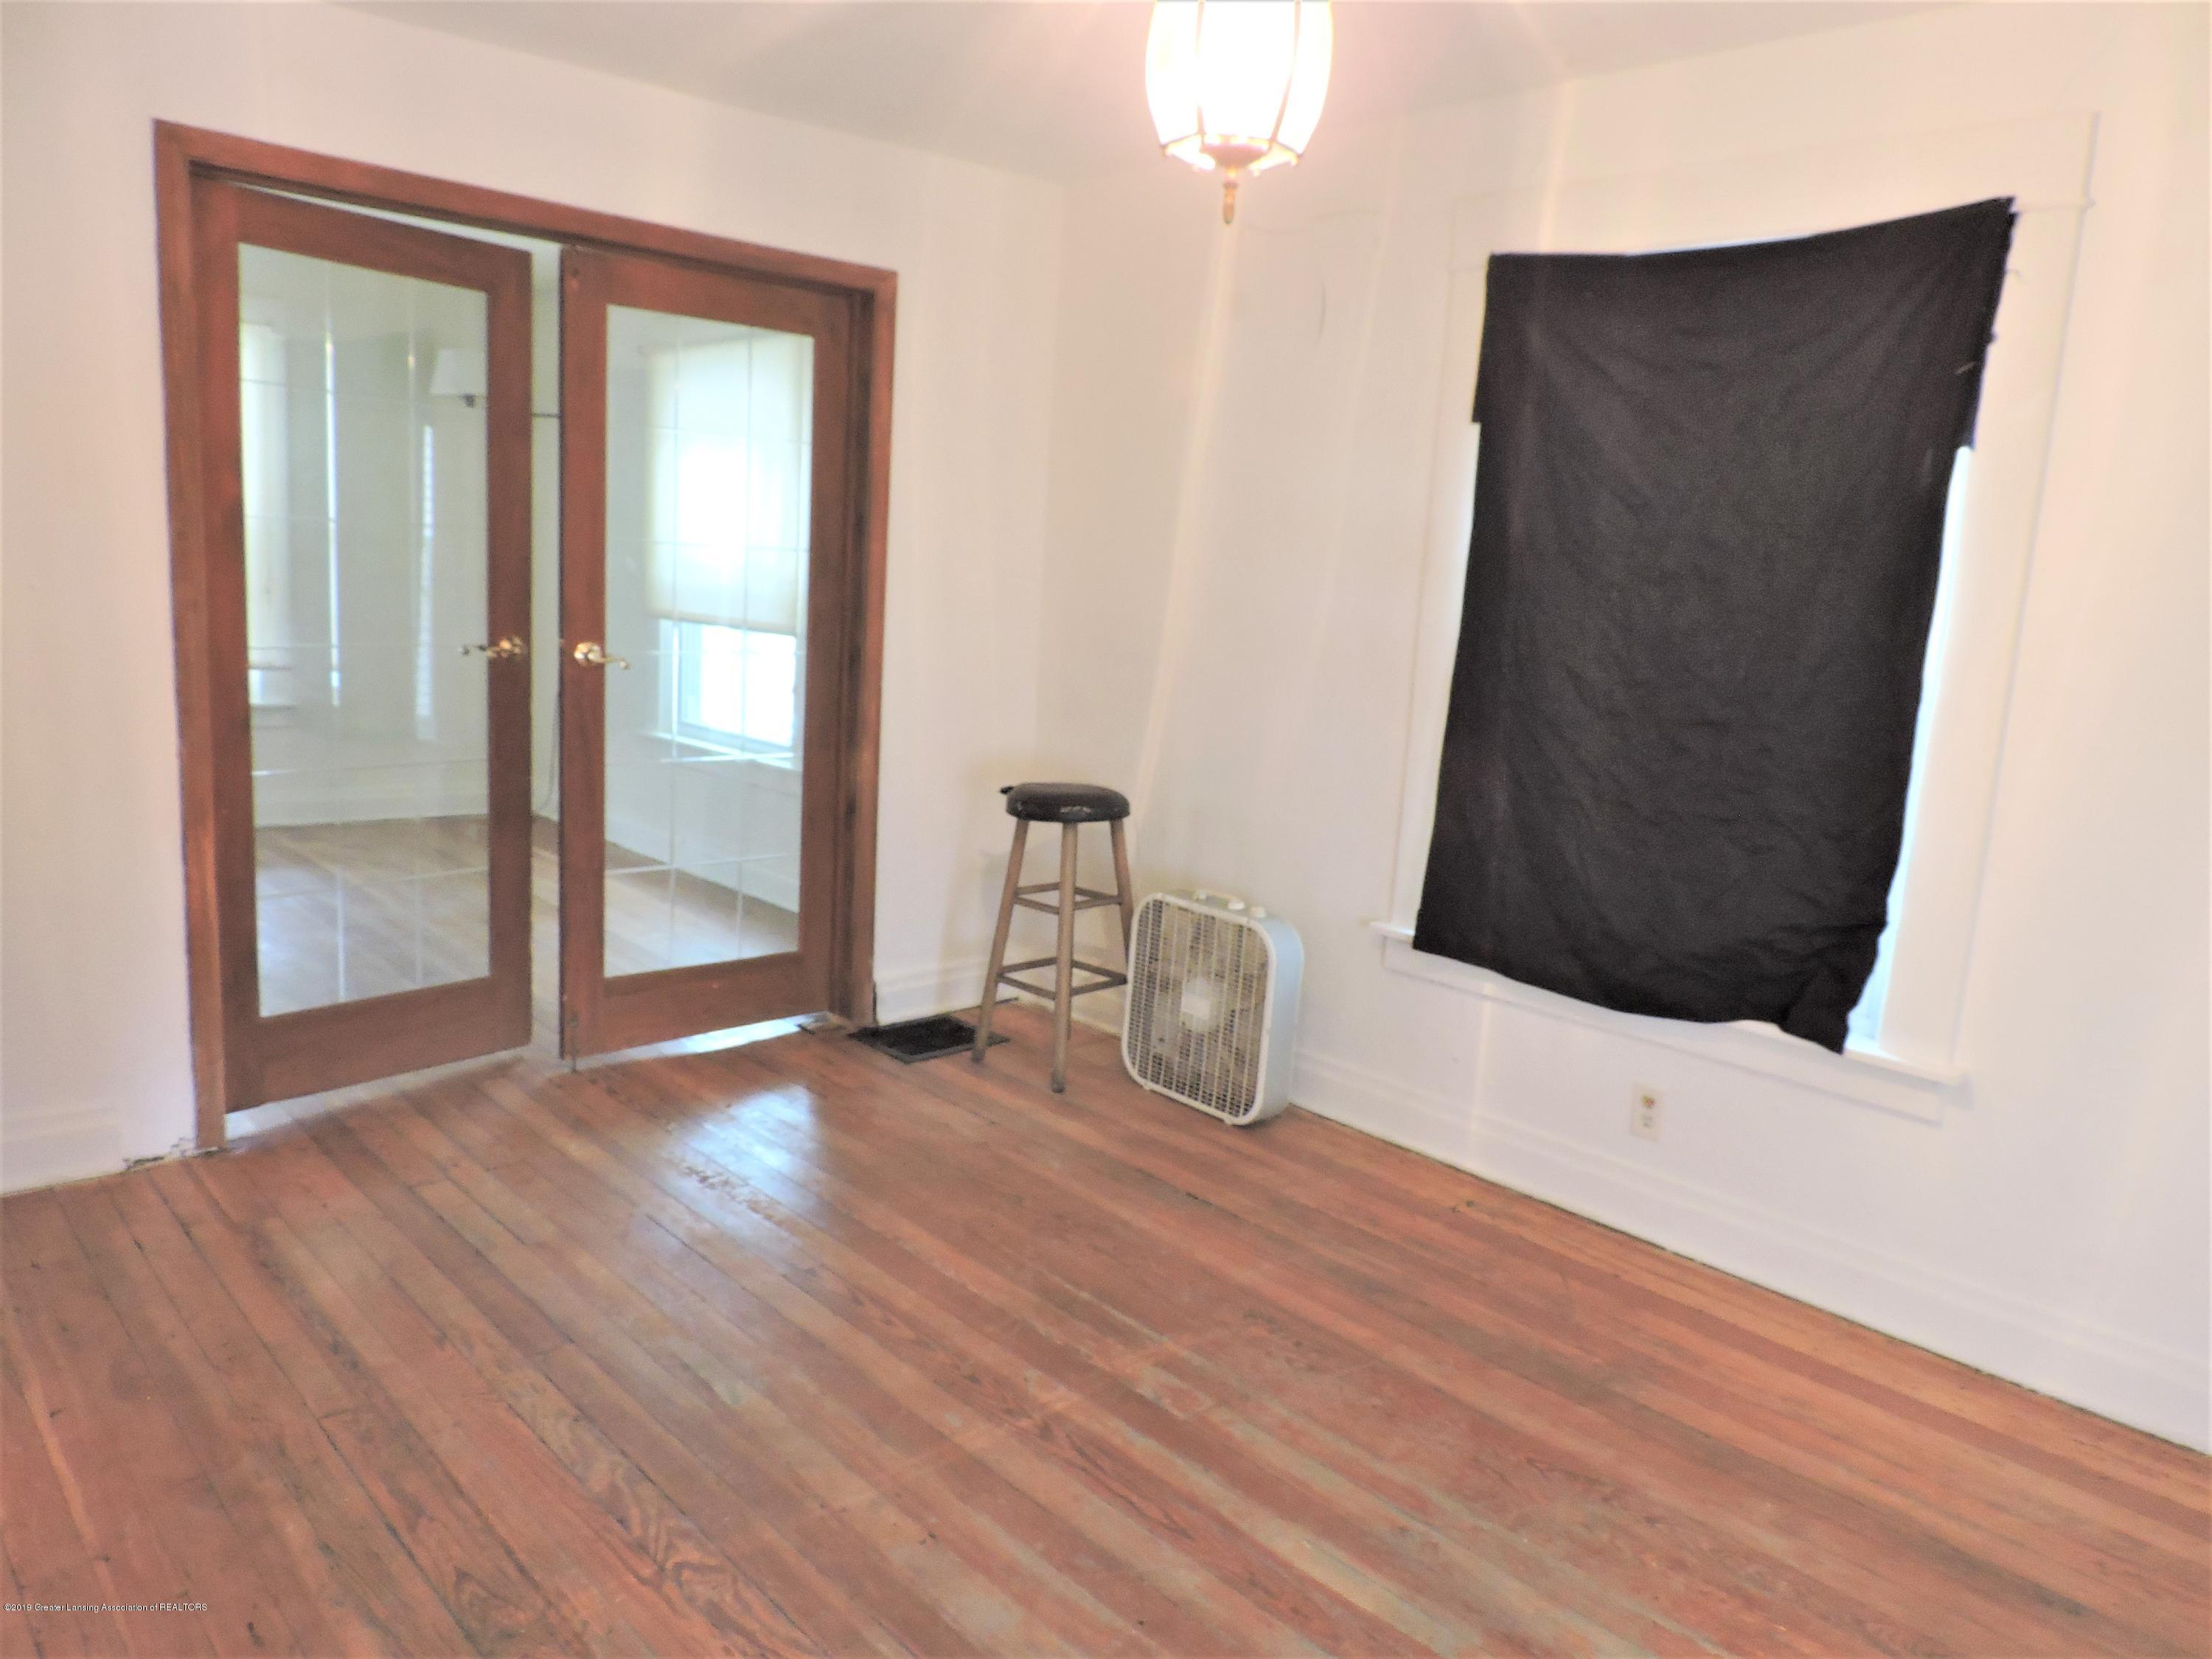 215 N Foster Ave - Dining Room 2 - 6